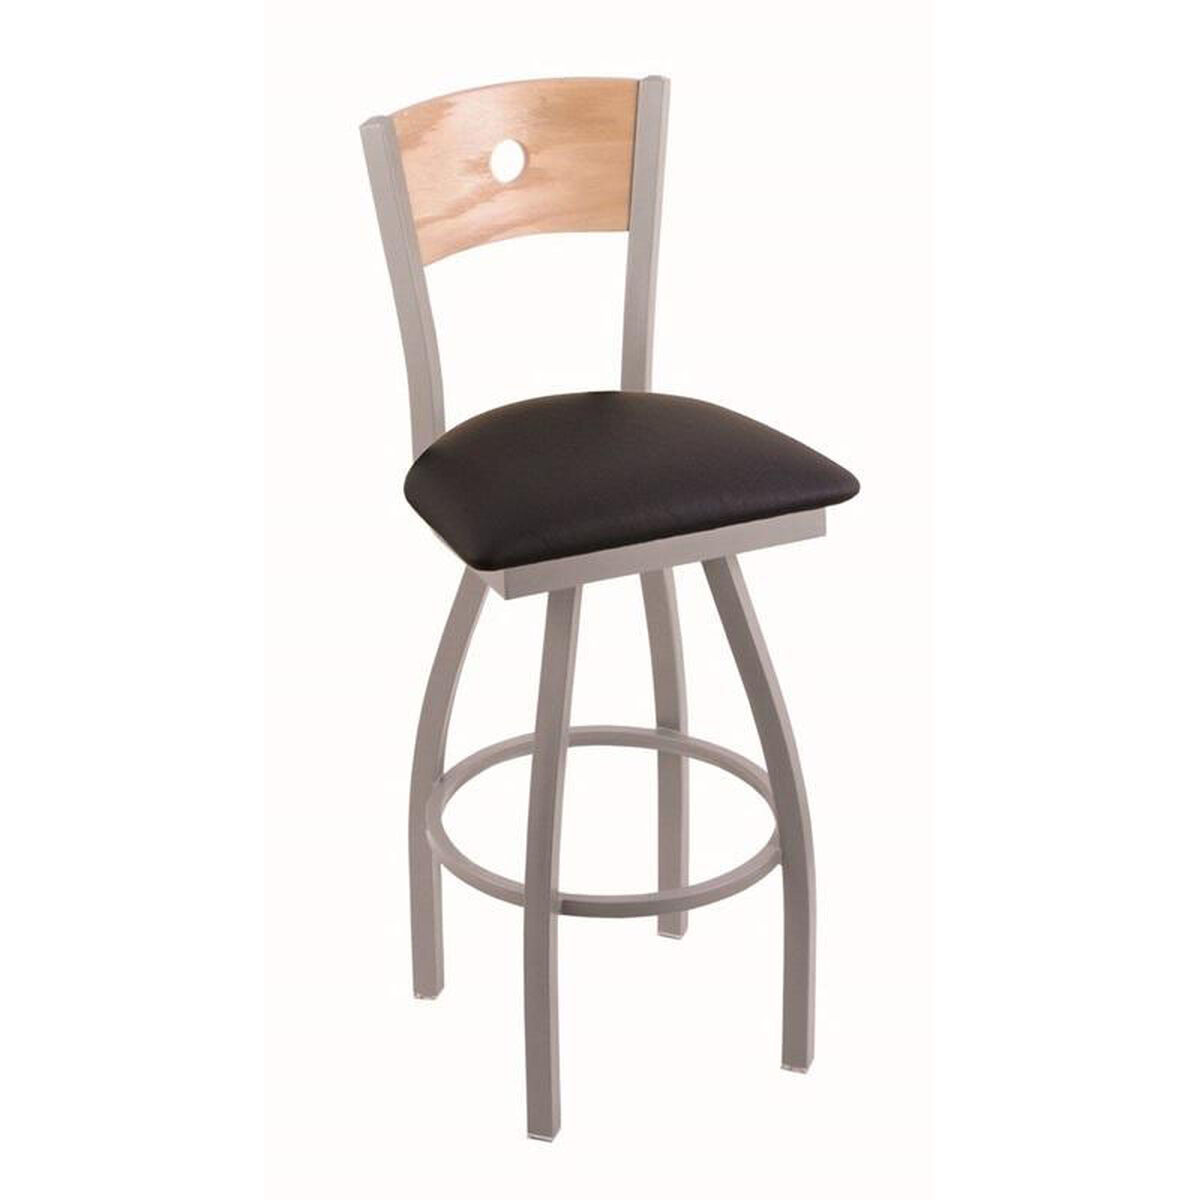 The Holland Bar Stool Co 83025ANNATOAKBBLKVINYL HOB  : THEHOLLANDBARSTOOLCO83025ANNATOAKBBLKVINYL HOBMAINIMAGE from www.restaurantfurniture4less.com size 1200 x 1200 jpeg 49kB